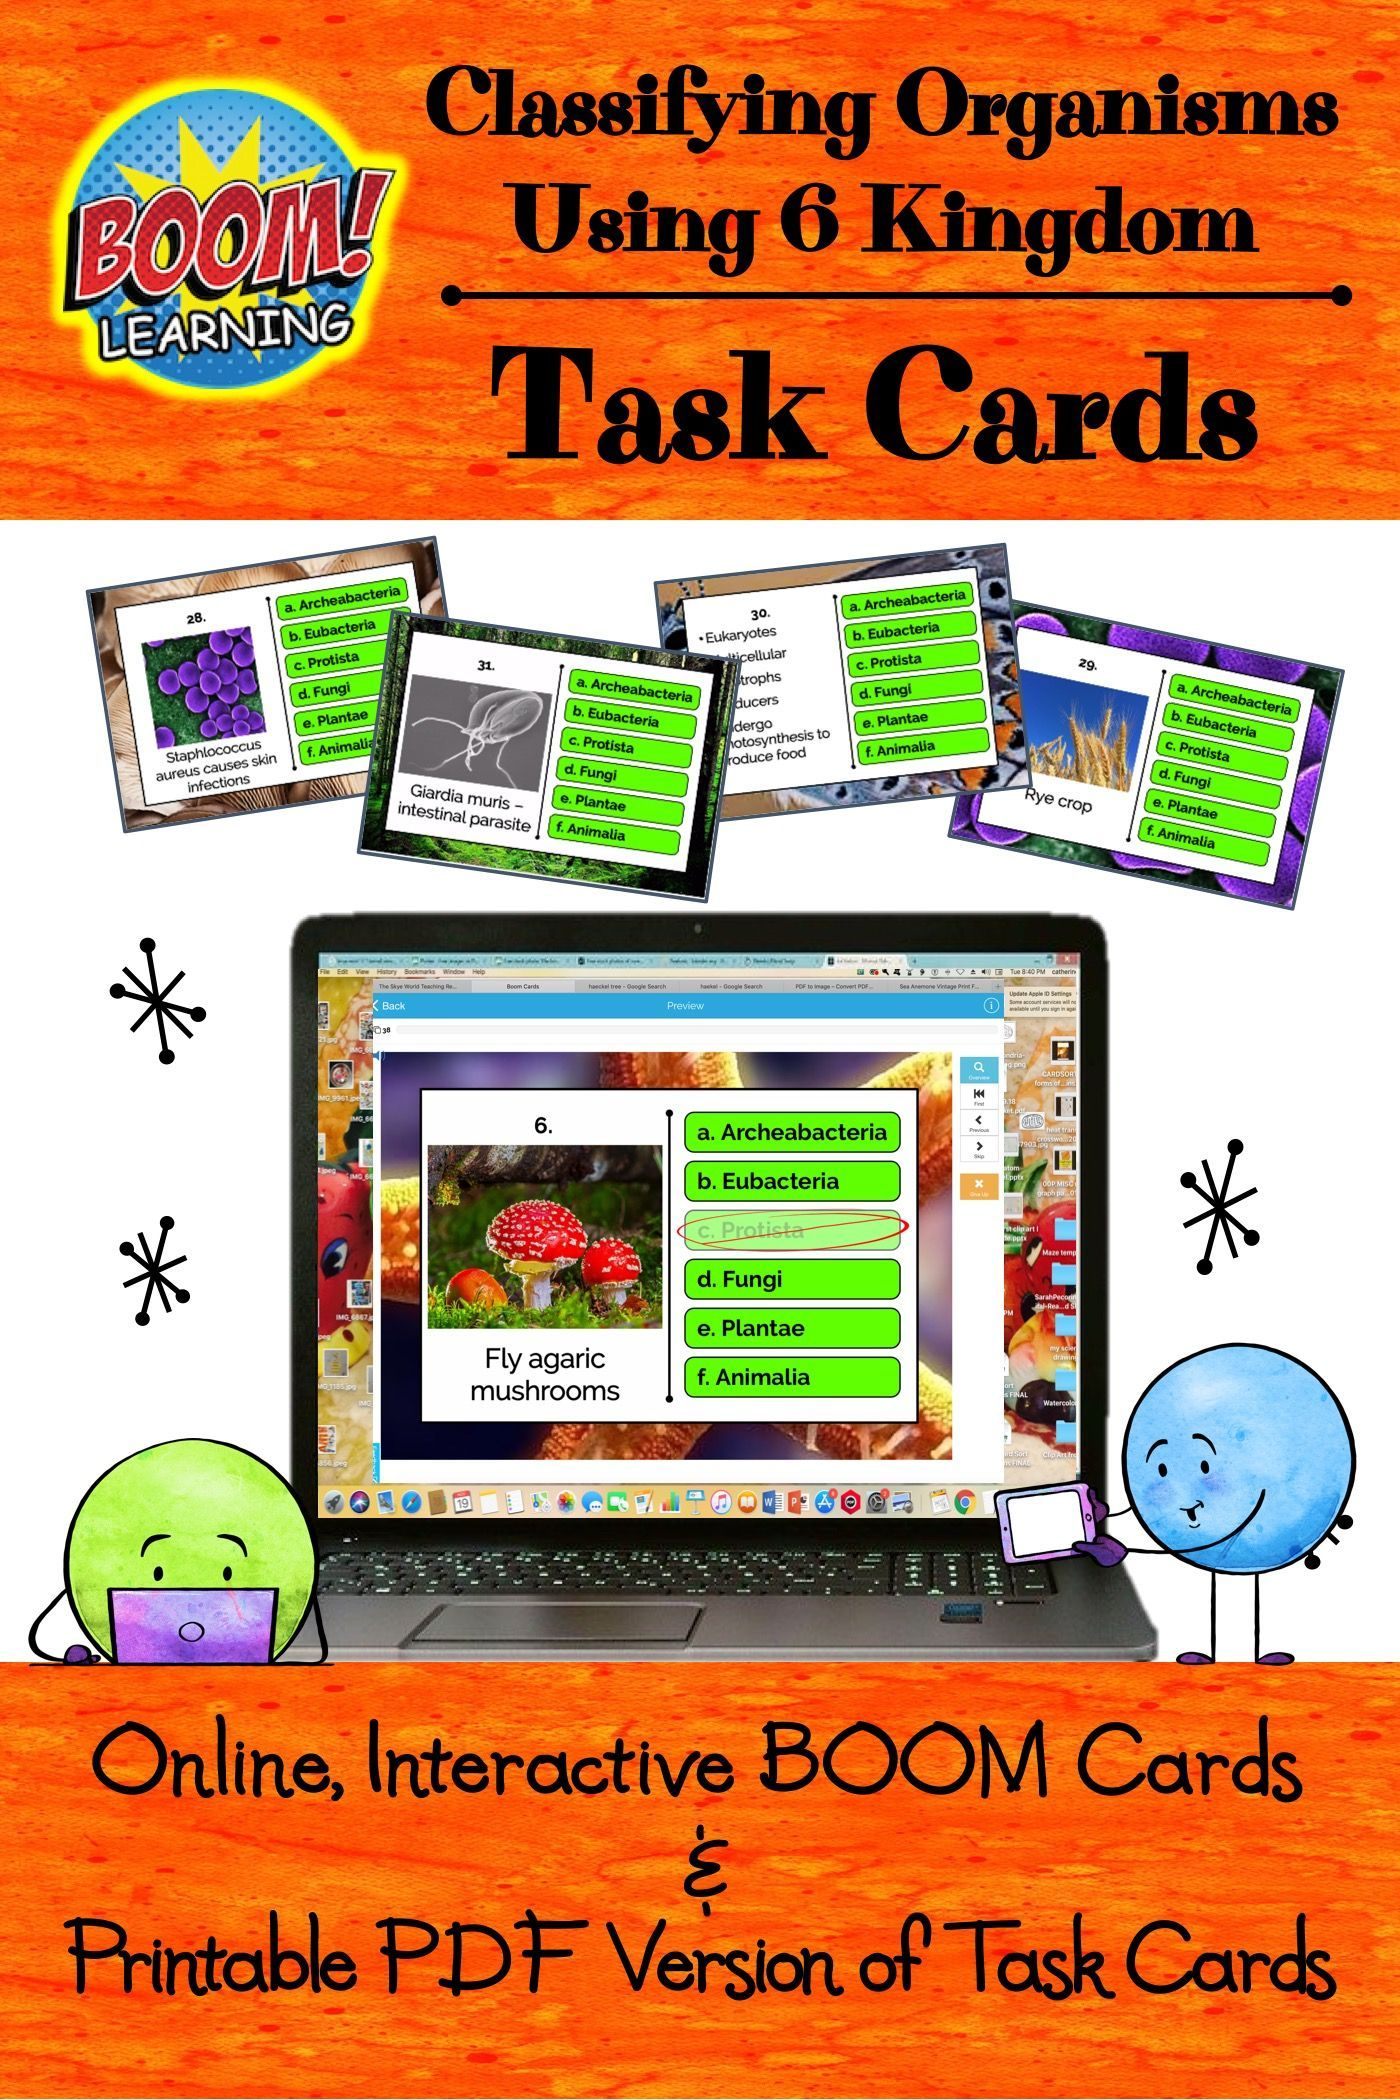 6 Kingdom Classification Task Cards